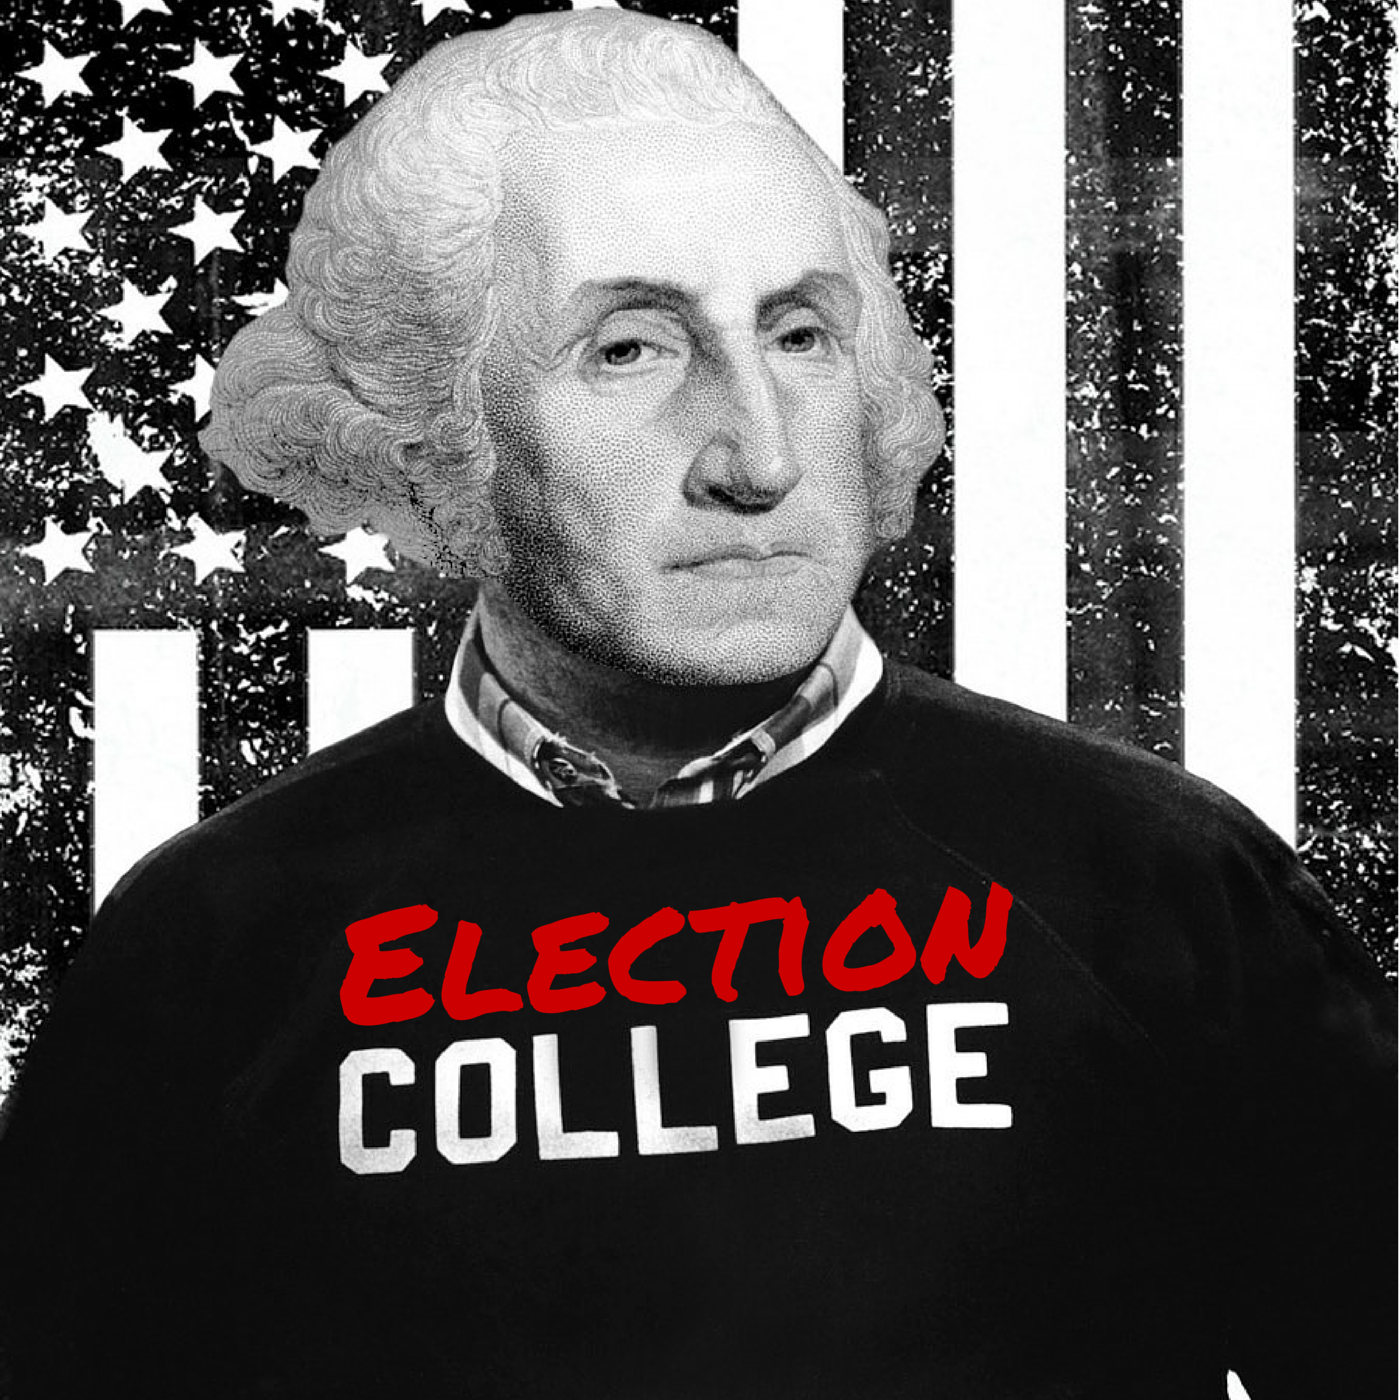 PACs and SuperPACs| Episode #099 | Election College: United States Presidential Election History